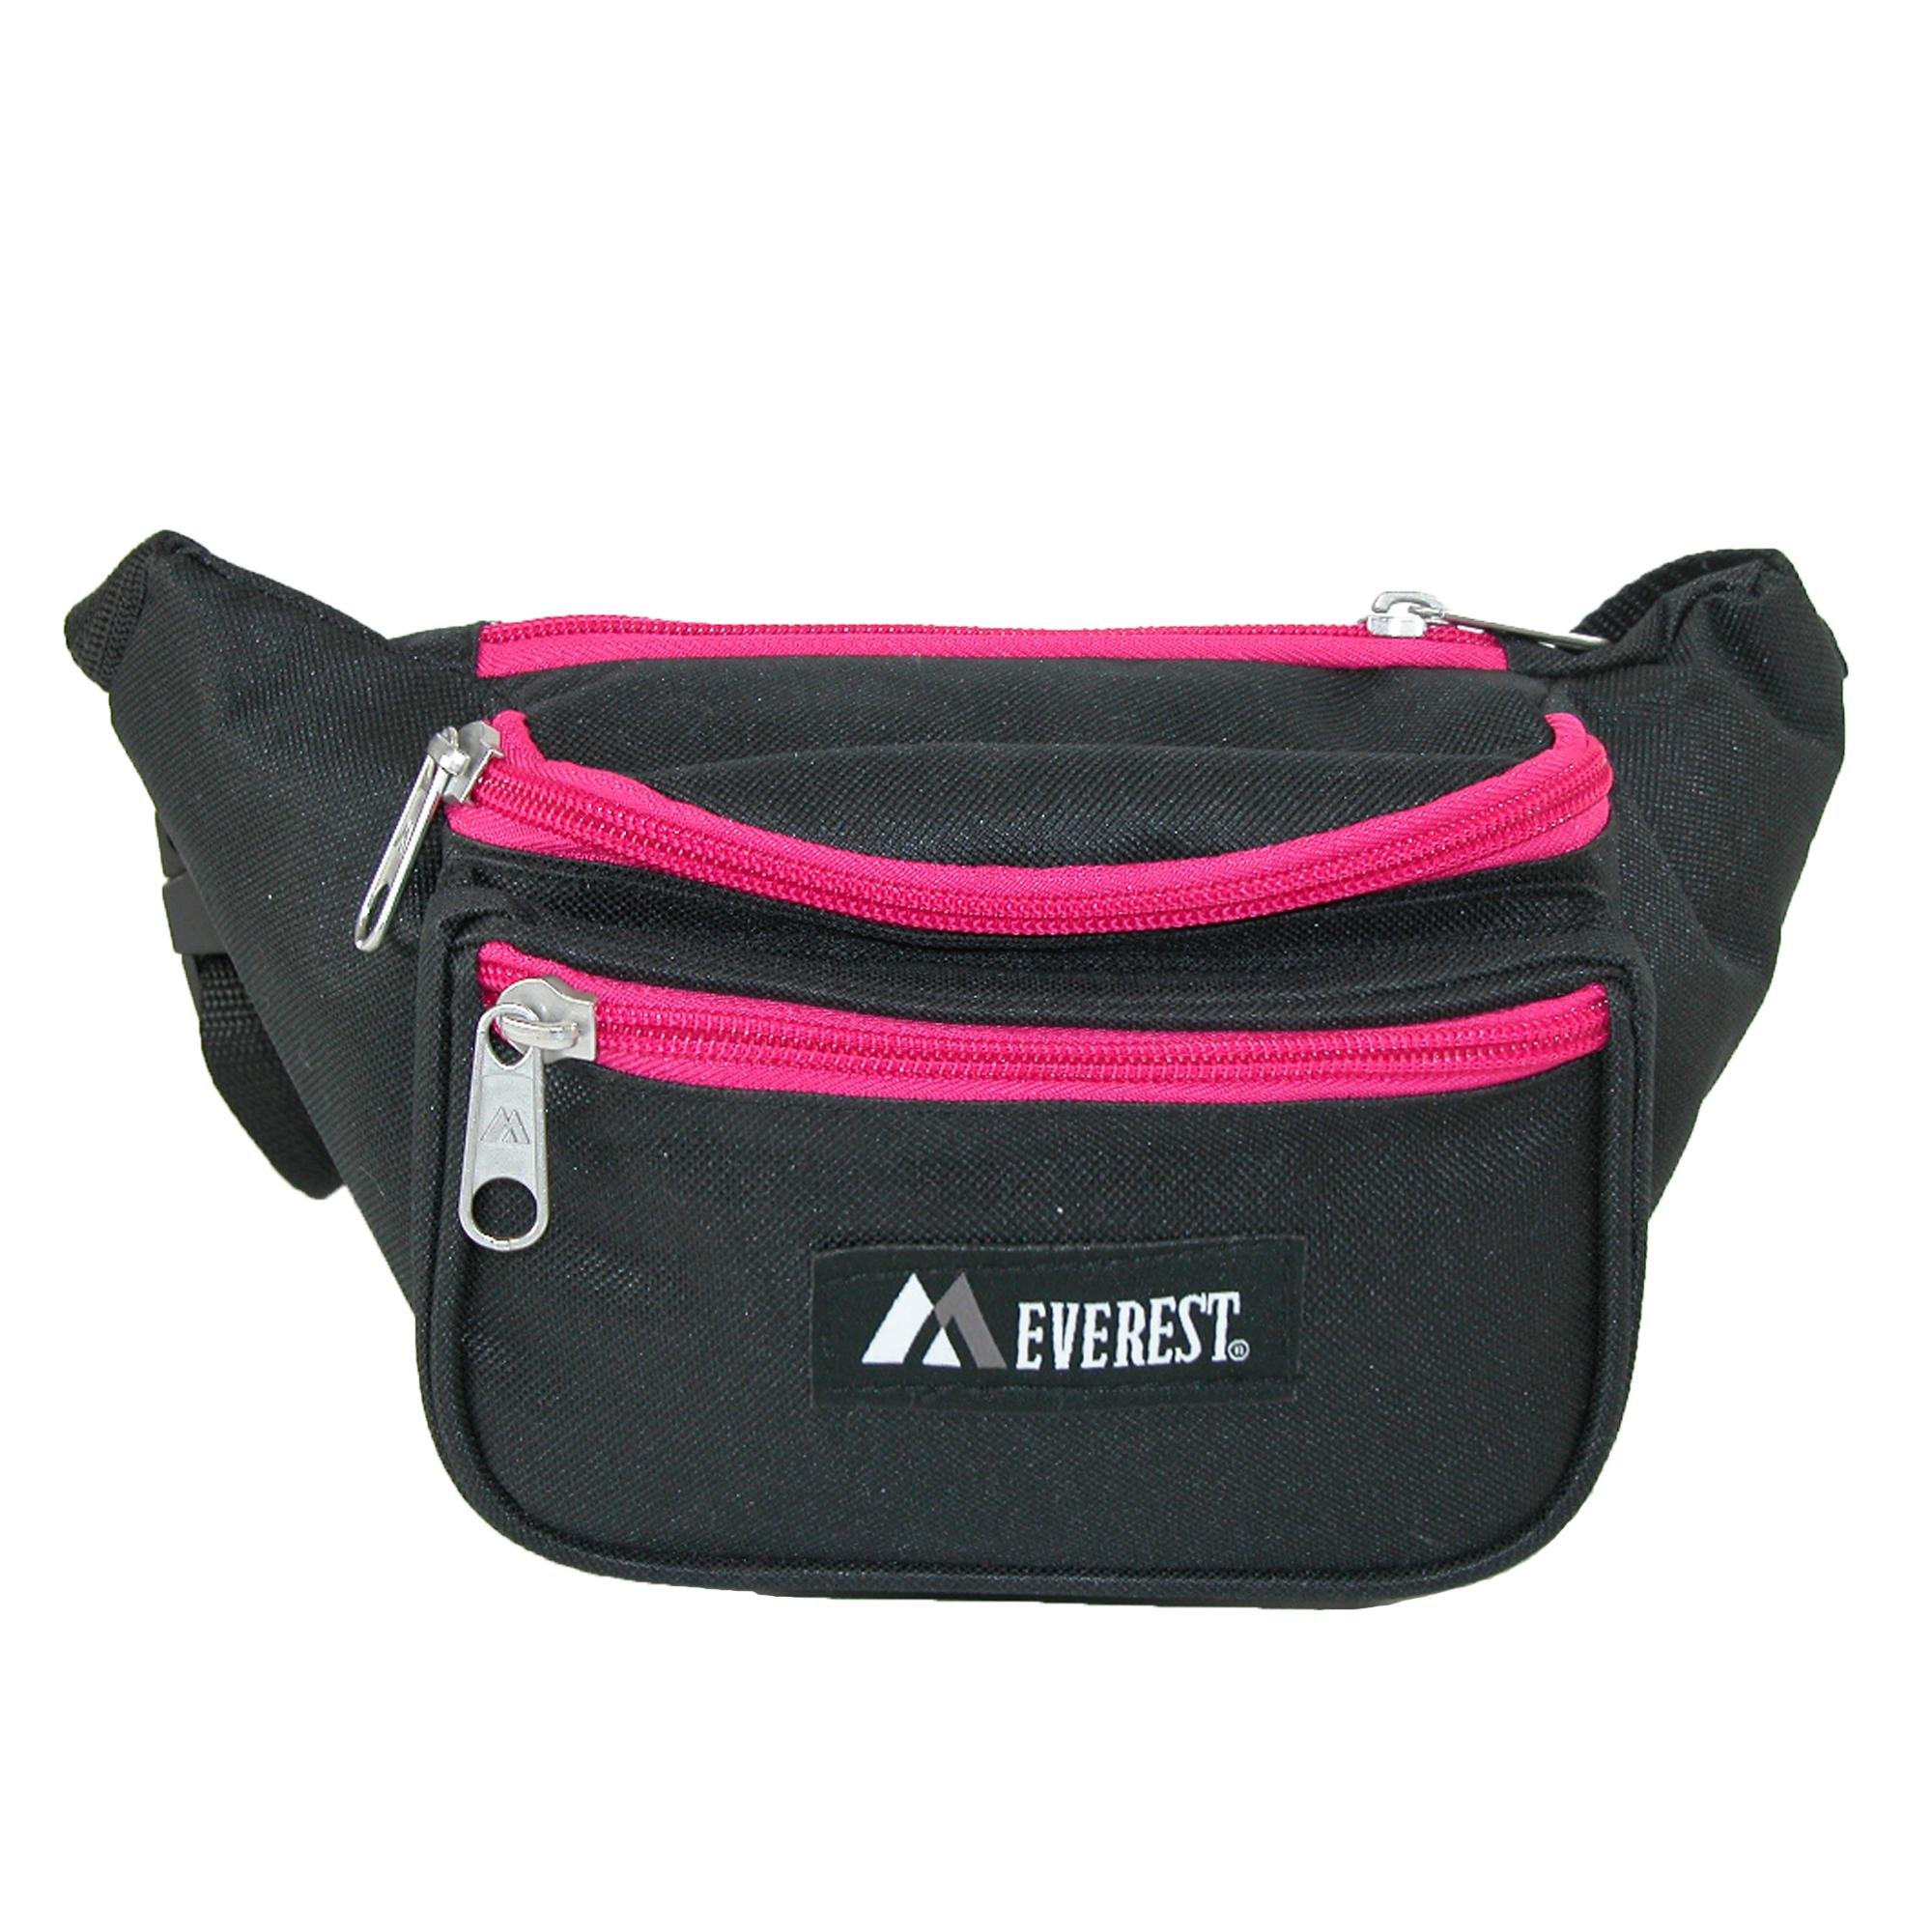 Everest_Fabric_Multi_Pocket_Fanny_Waist_Pack_-